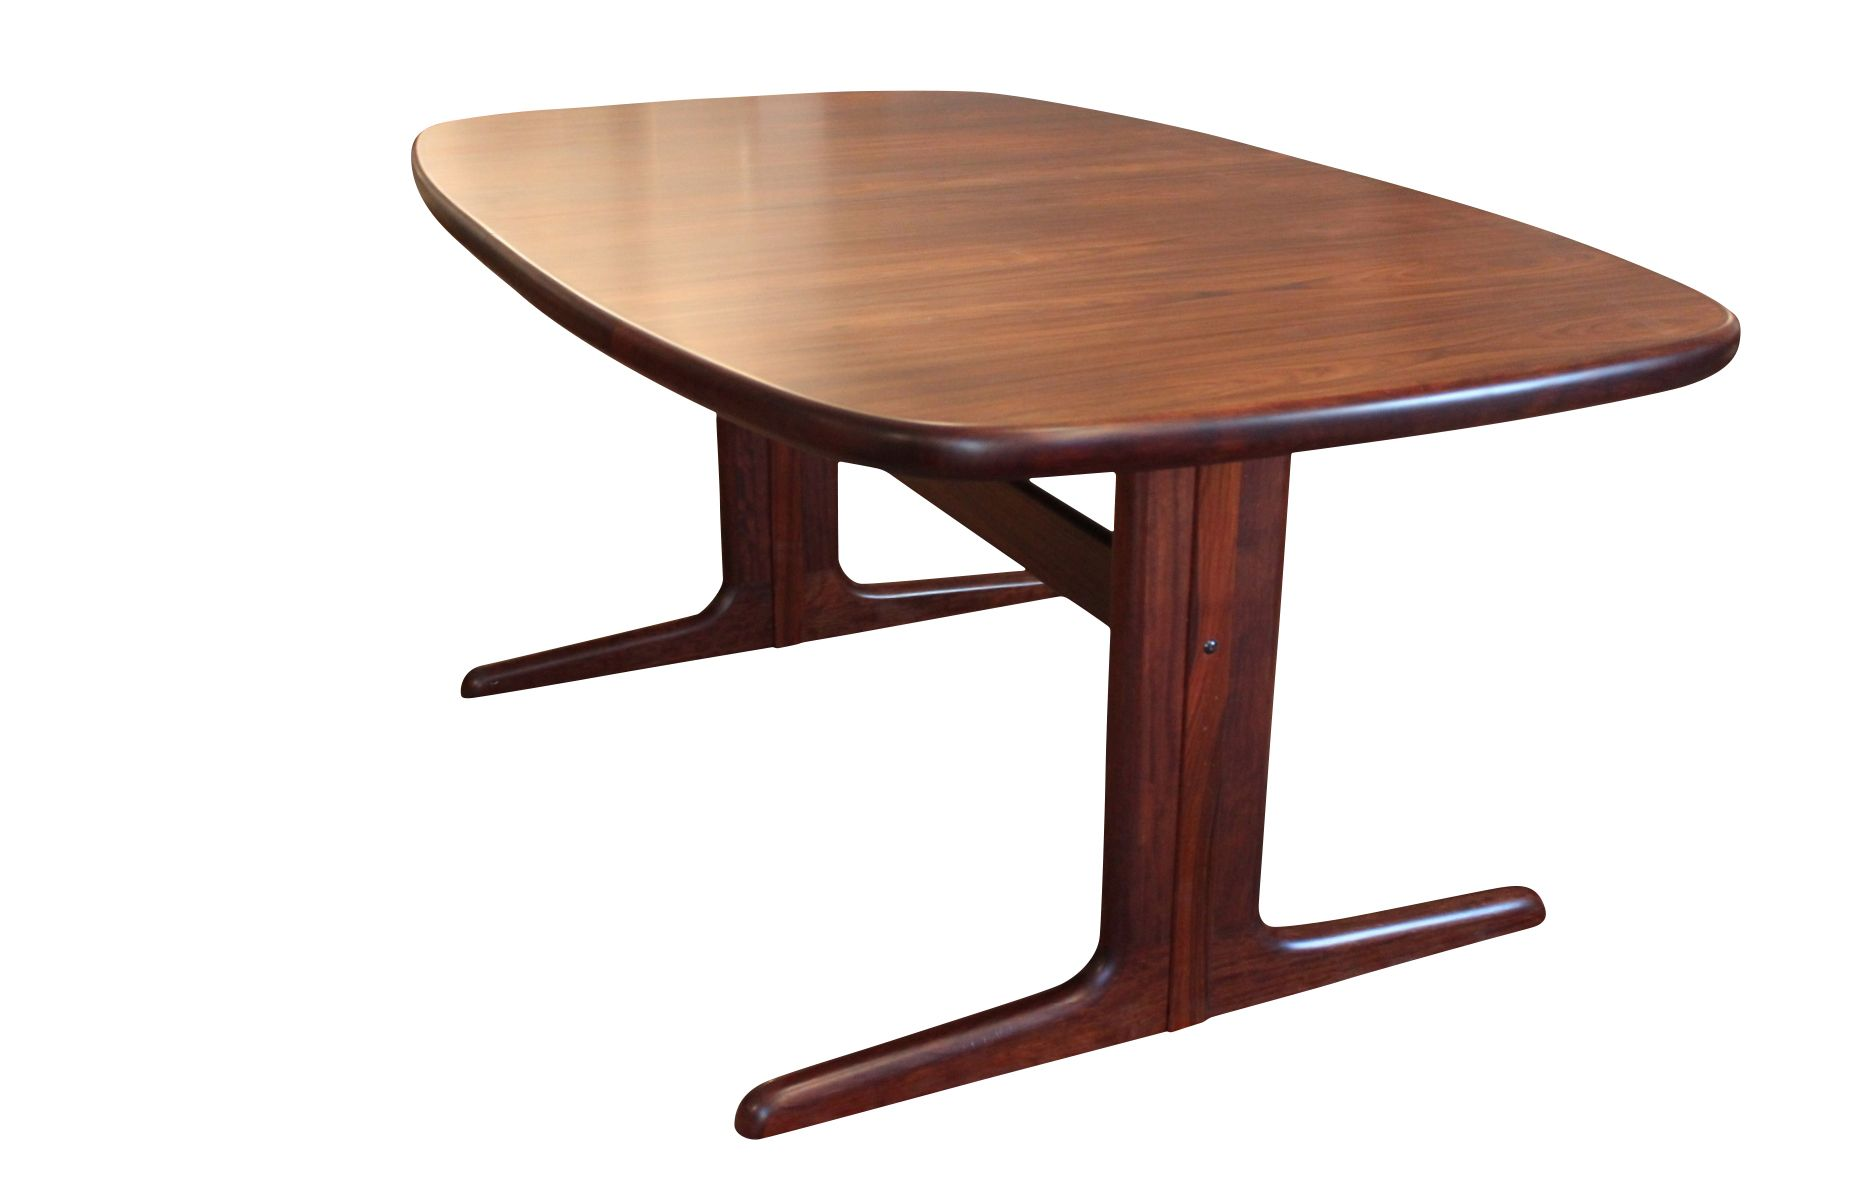 skovby rosewood dining chairs chair positions in a fraternity no 74 table from for sale at pamono